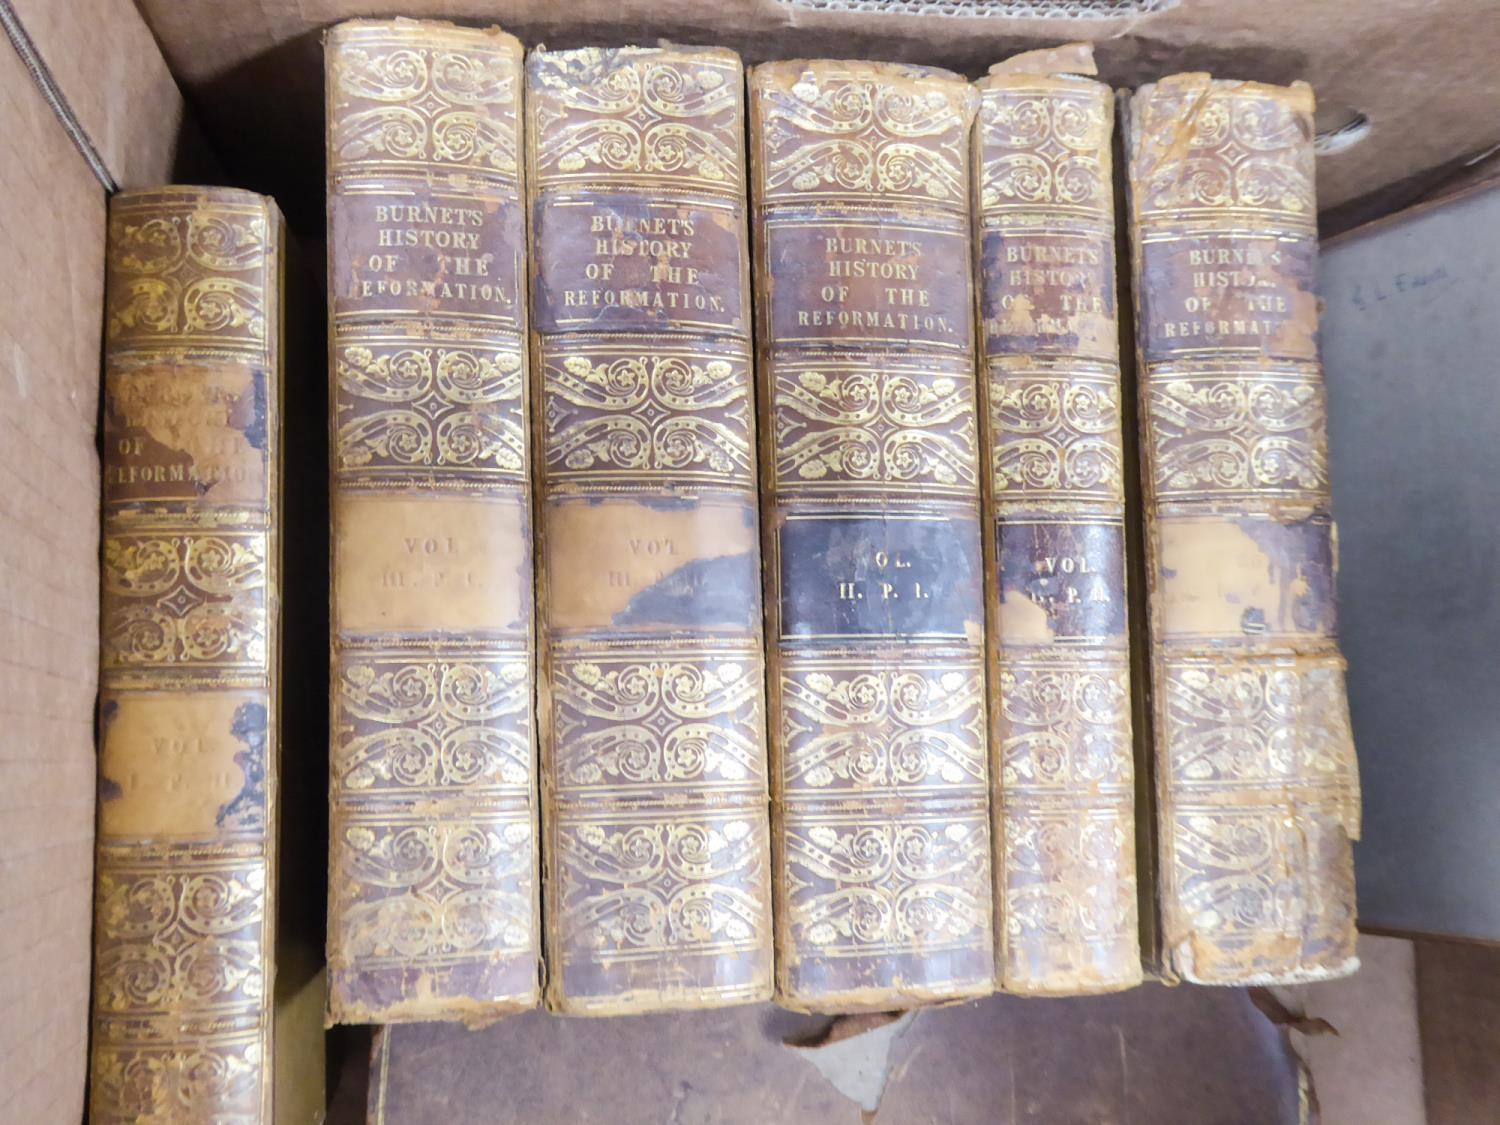 Lot 14 - BISHOP R BURNET, THE HISTORY OF THE REFORMATION, 6 volumes (3 volumes, 2 parts per volume),